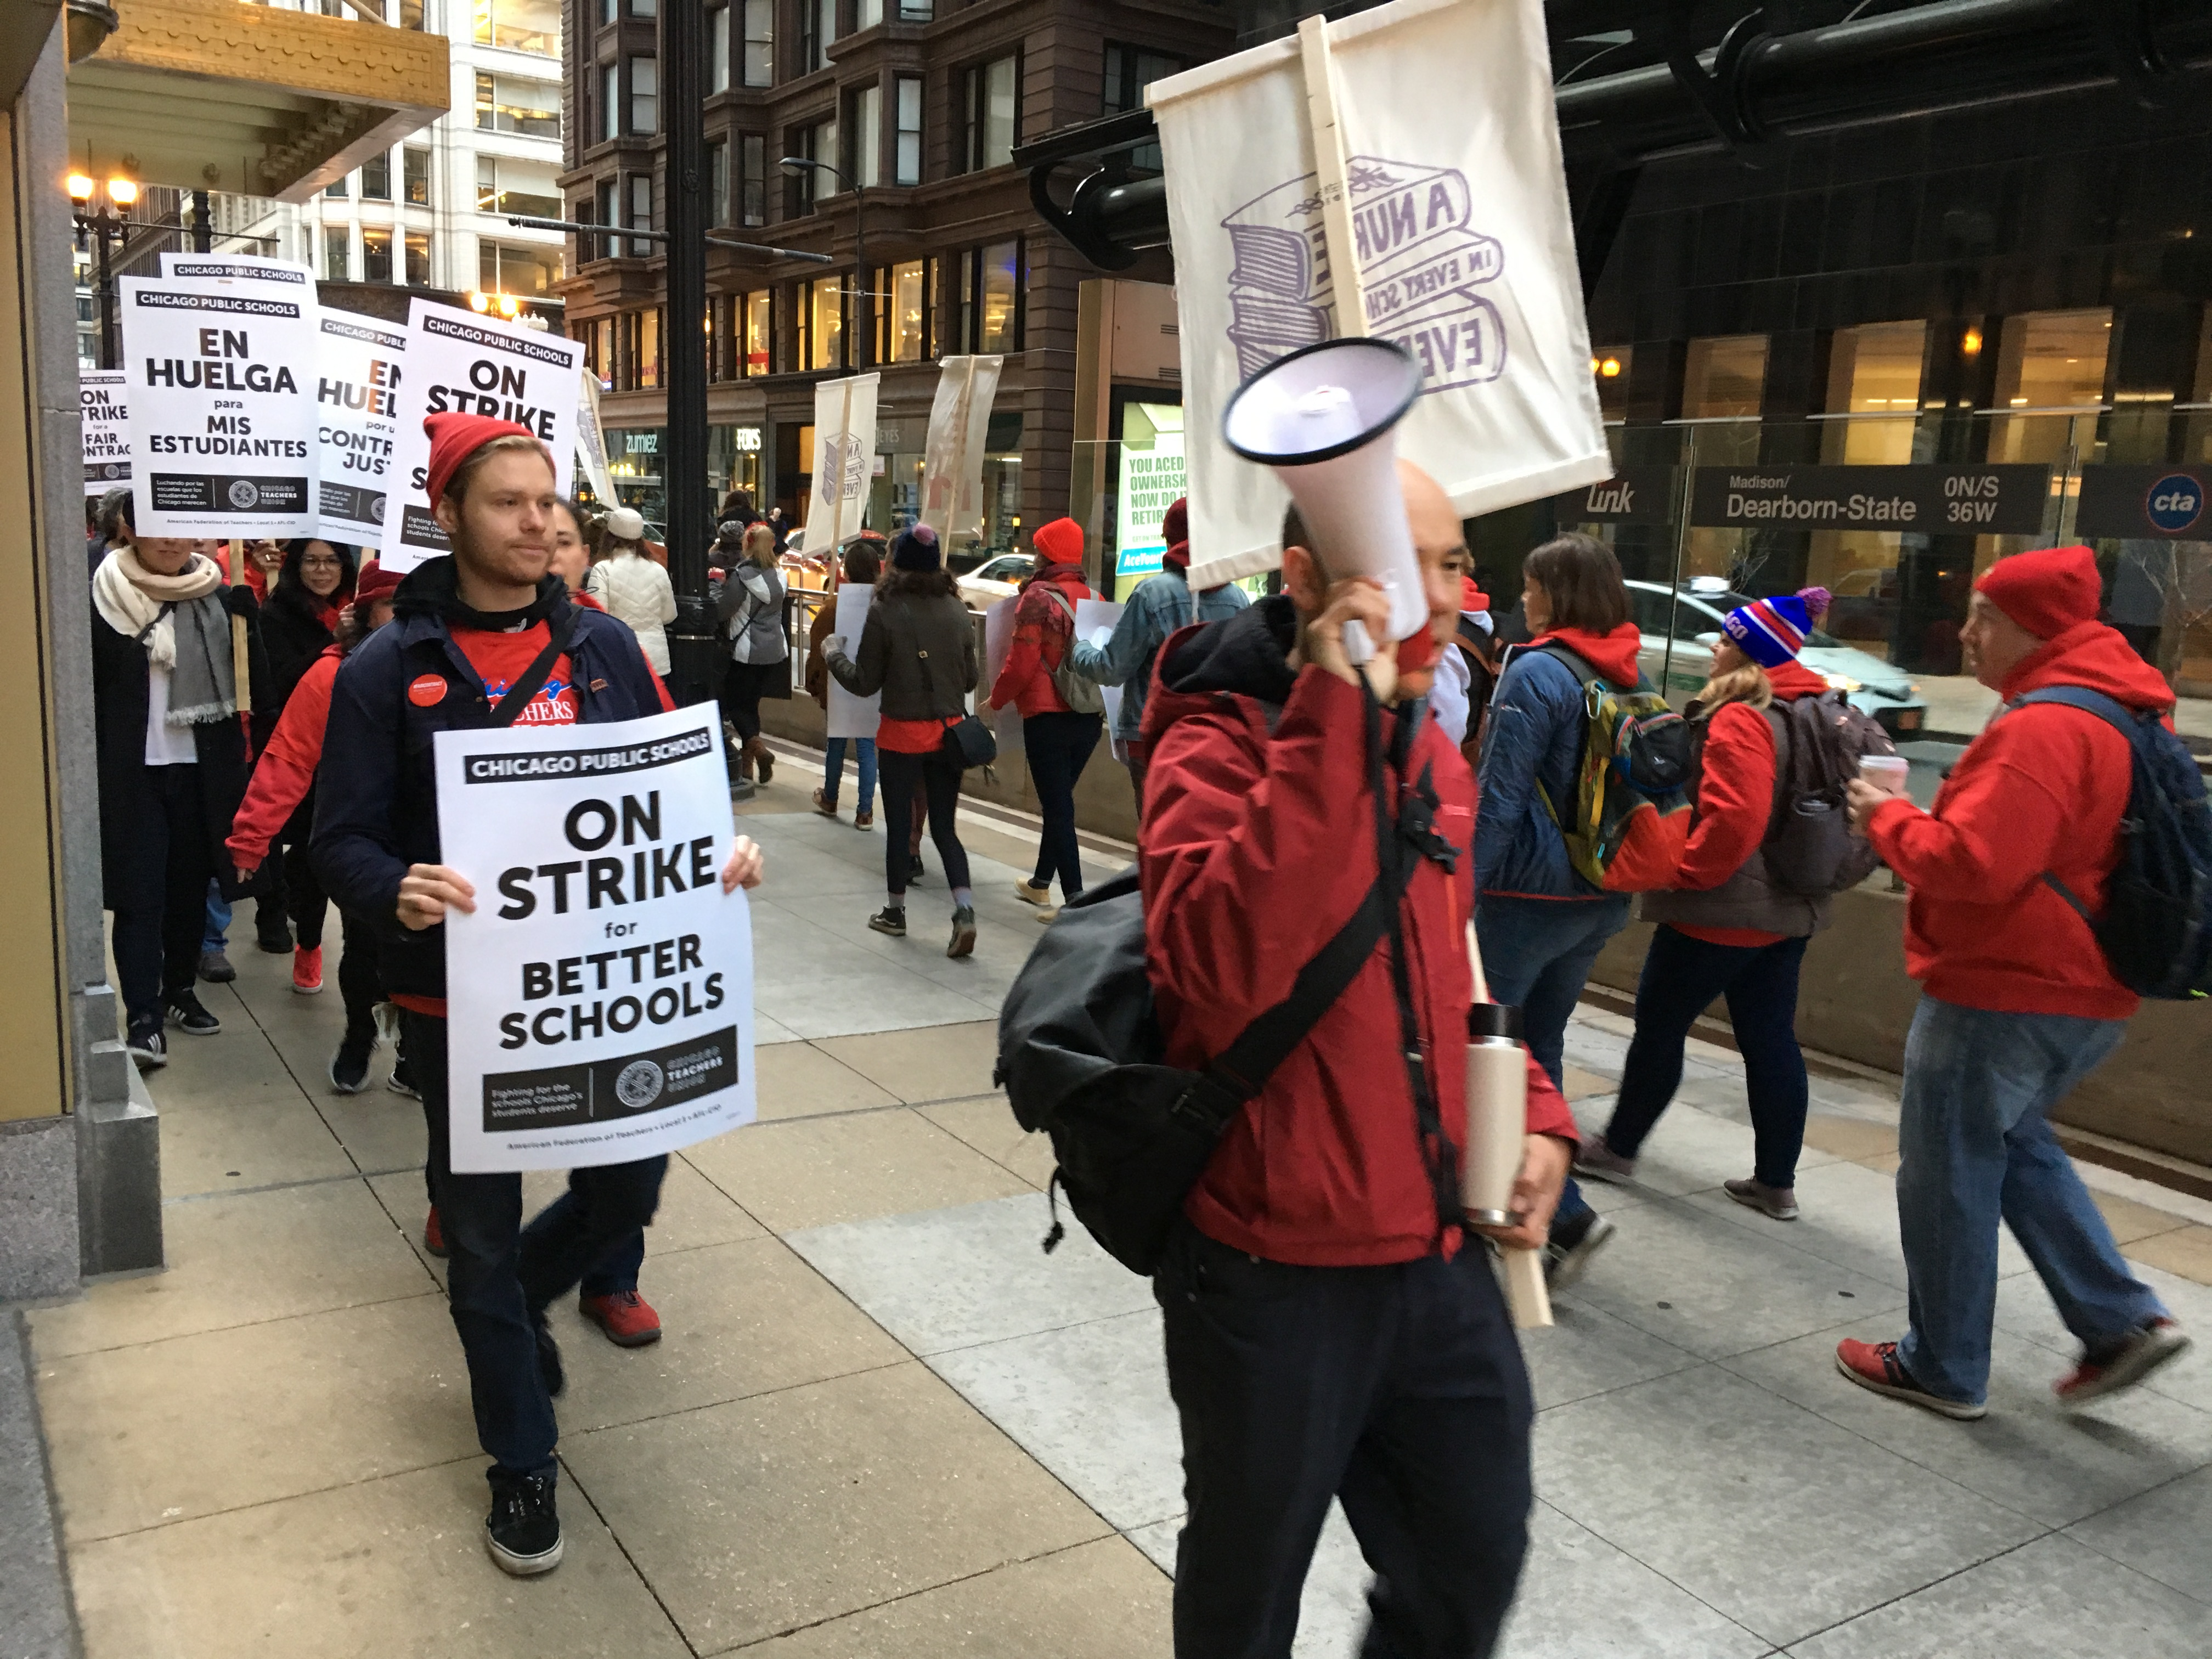 Chicago Teachers Union members picketed in downtown Chicago on the first day of the union's strike.